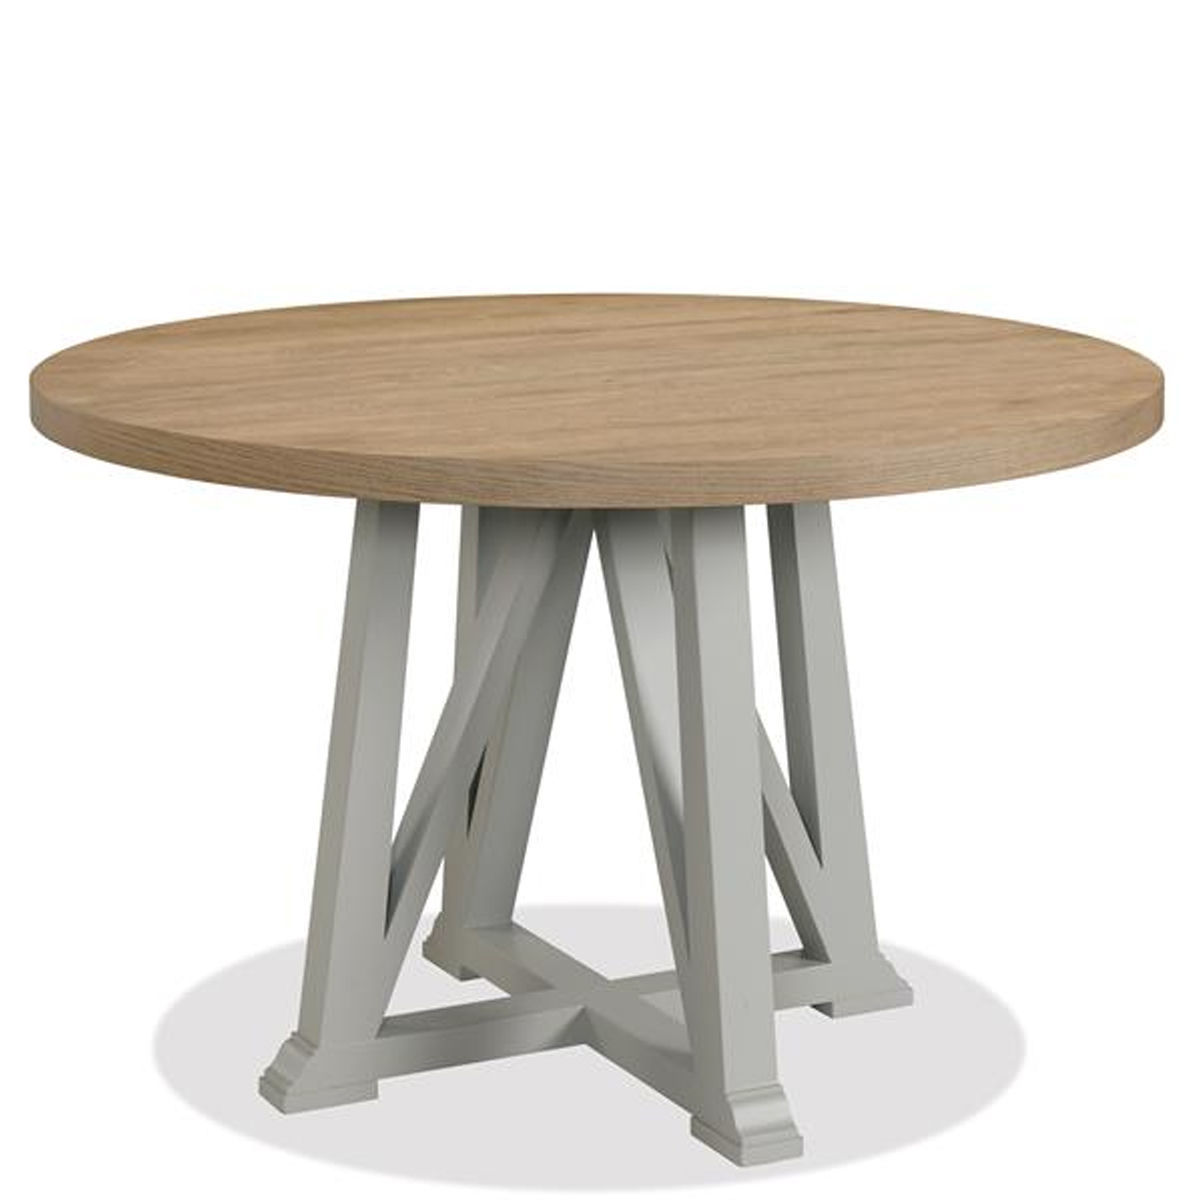 Picture of OSBORNE Round Dining Table